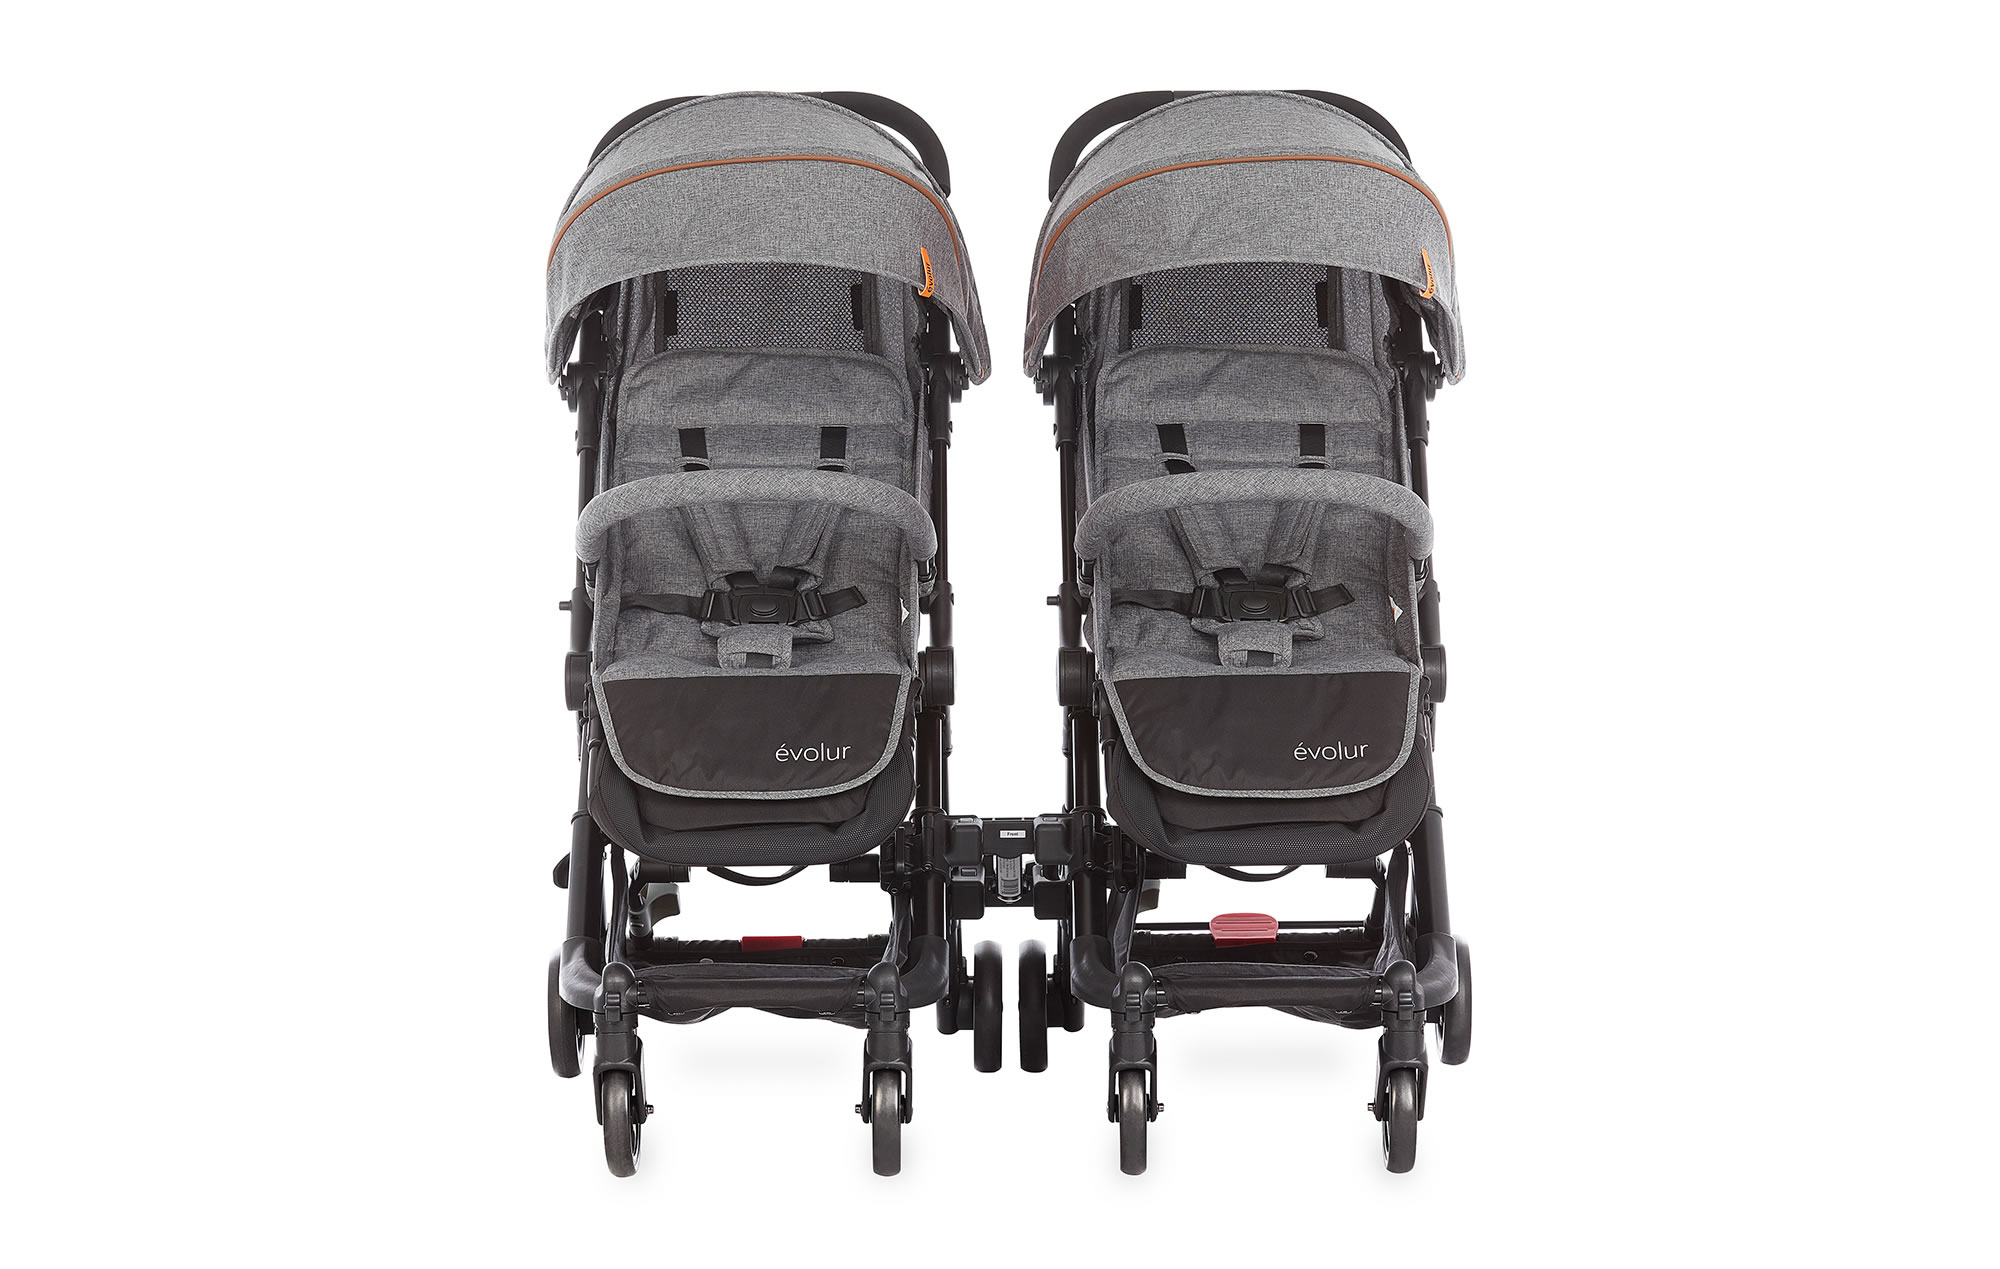 Evolur Infinity Convertible Stroller Connector